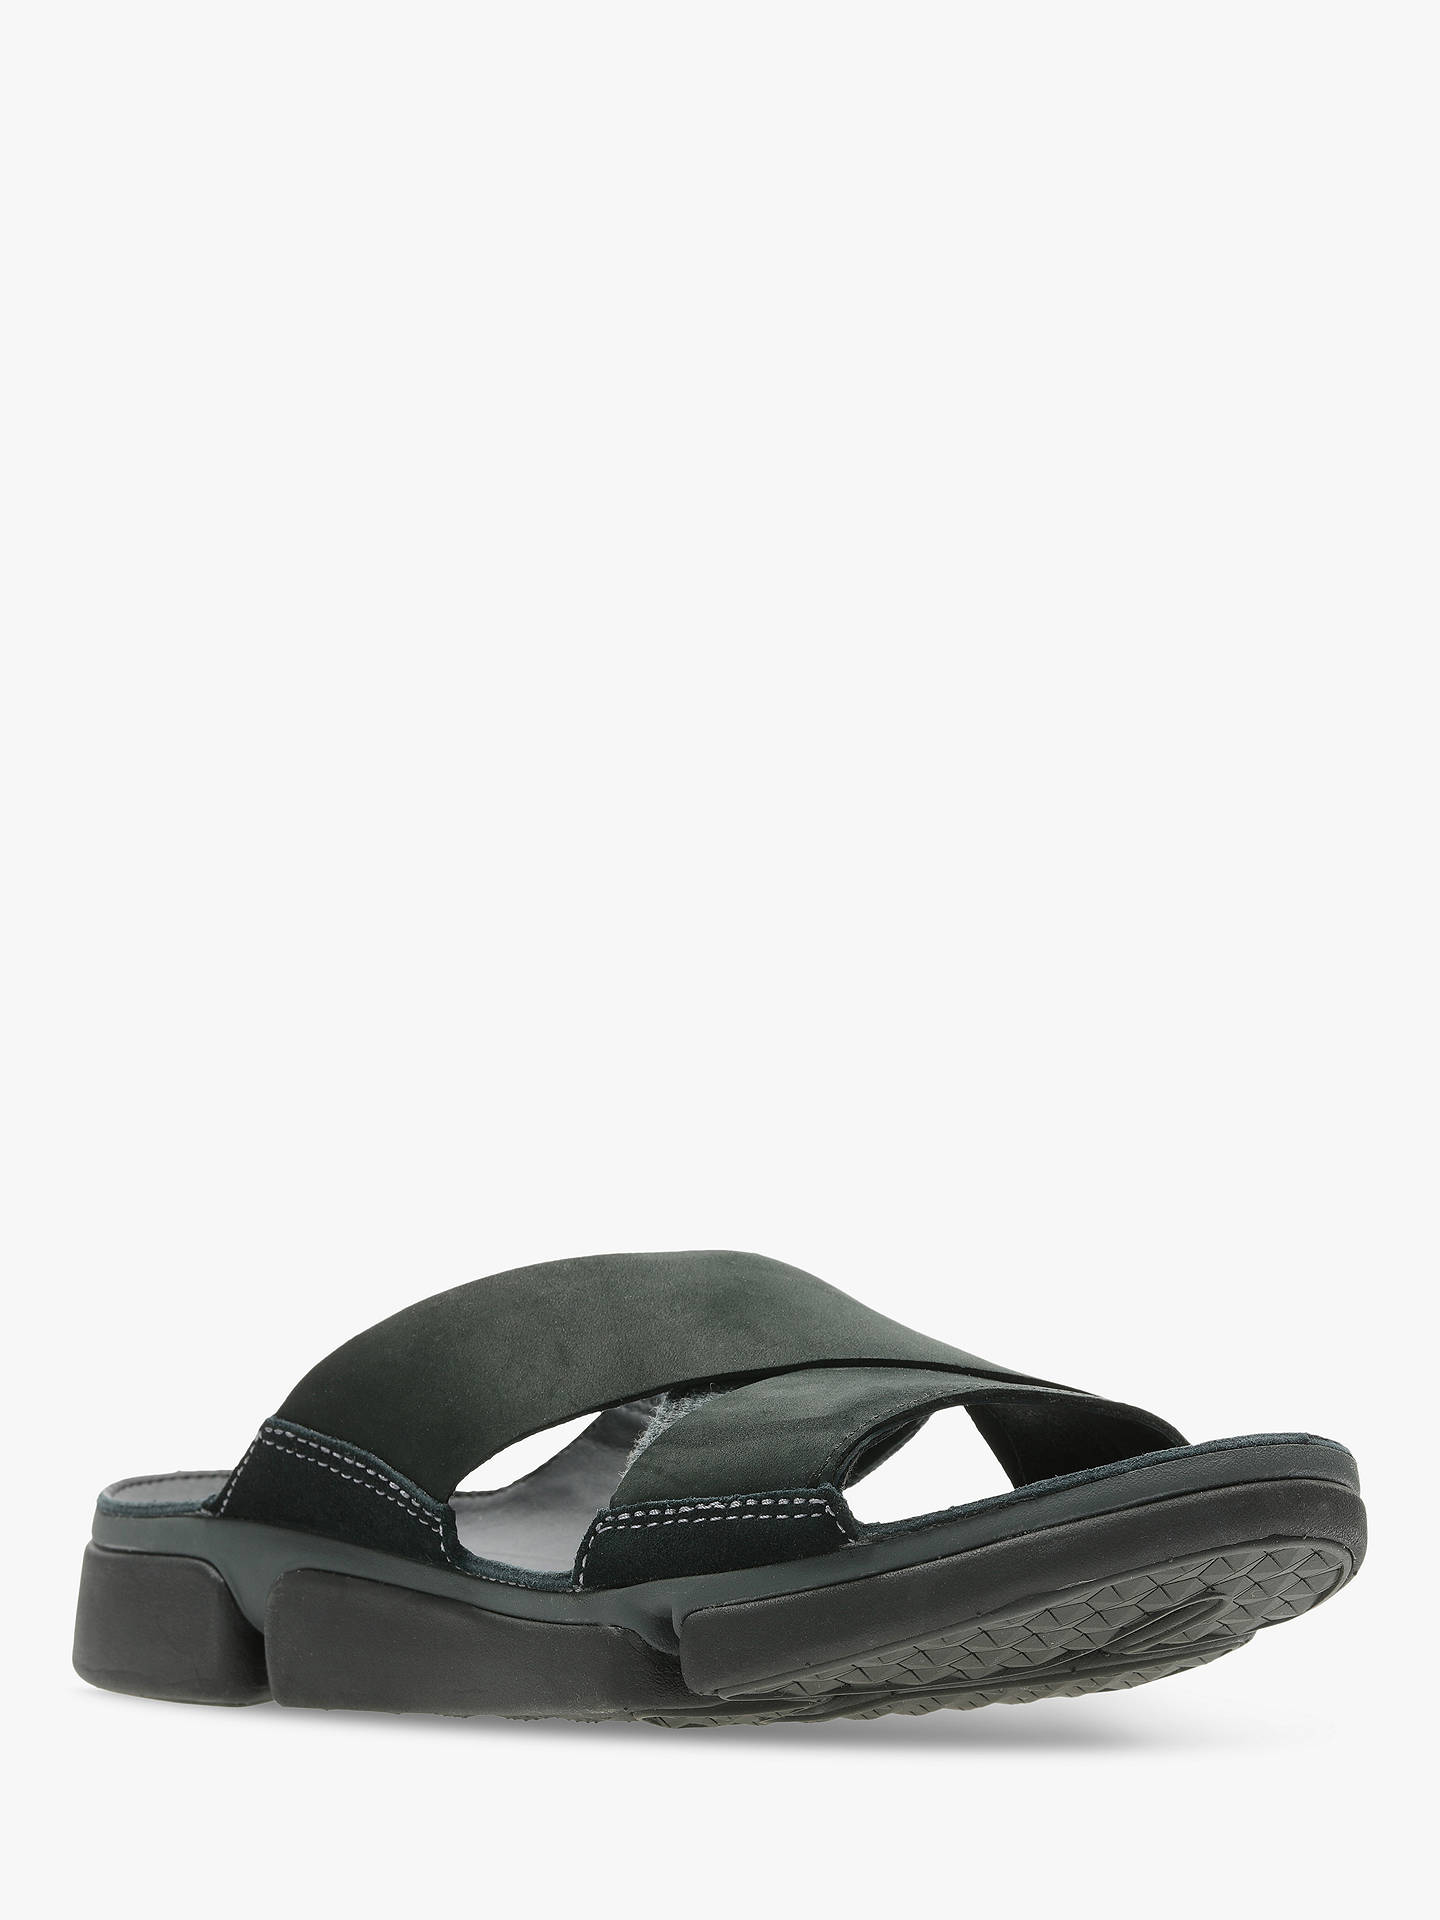 Buy Clarks Tri Cove Cross Leather Sandals, Black Combi, 11 Online at johnlewis.com